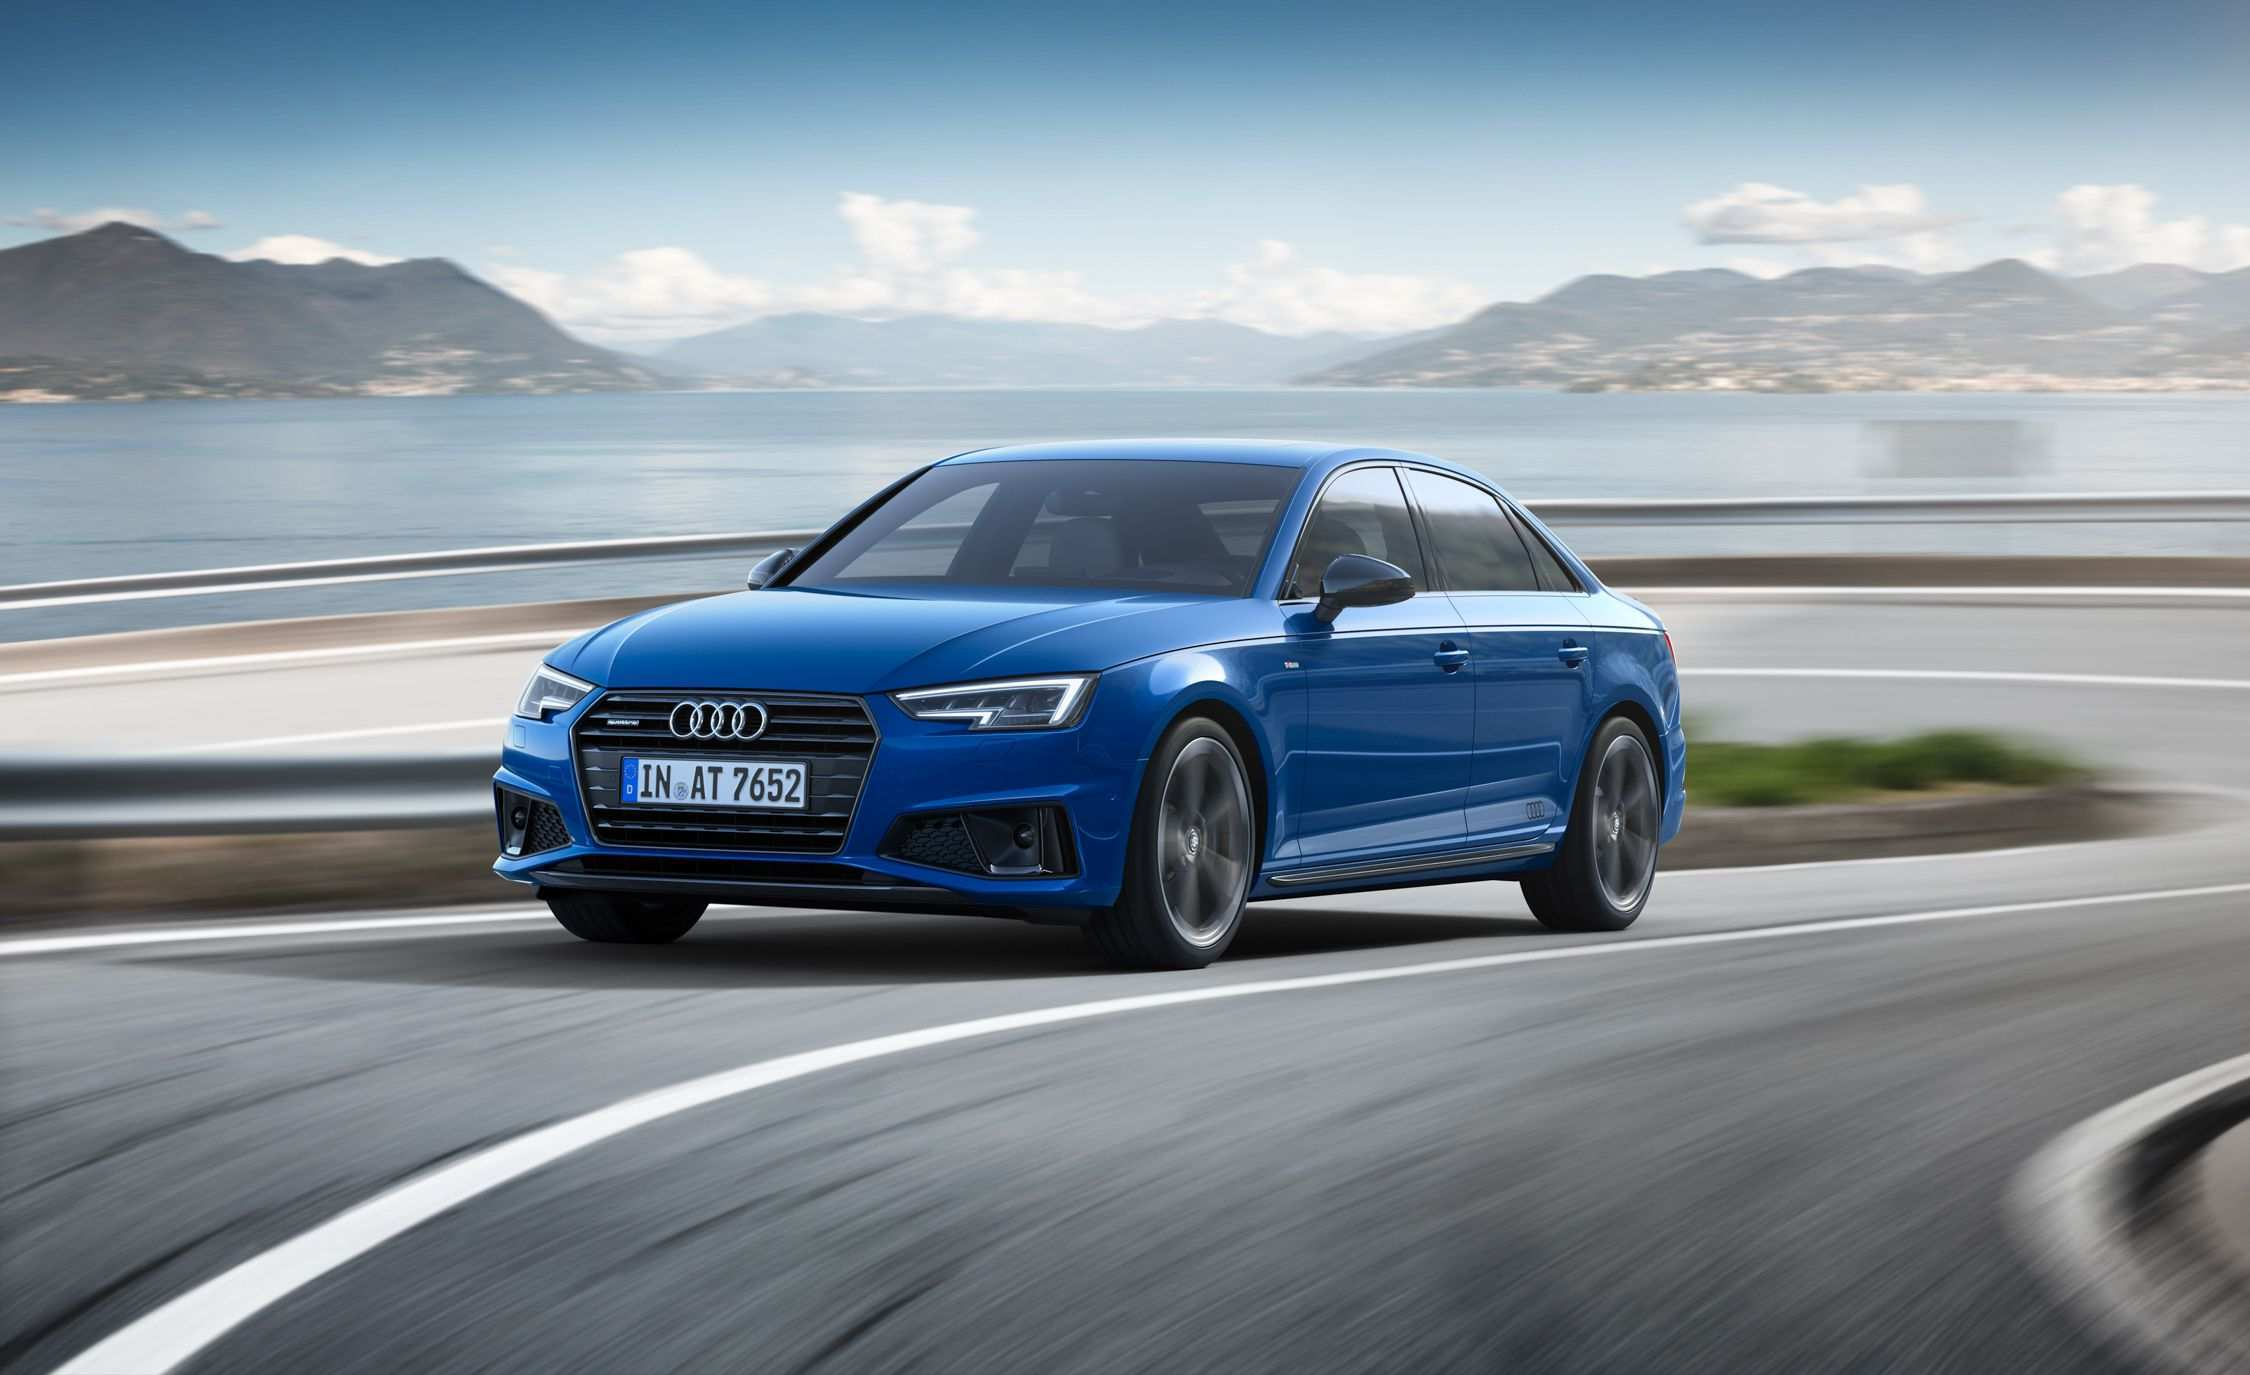 87 Great New A4 Audi 2019 Spesification Speed Test by New A4 Audi 2019 Spesification